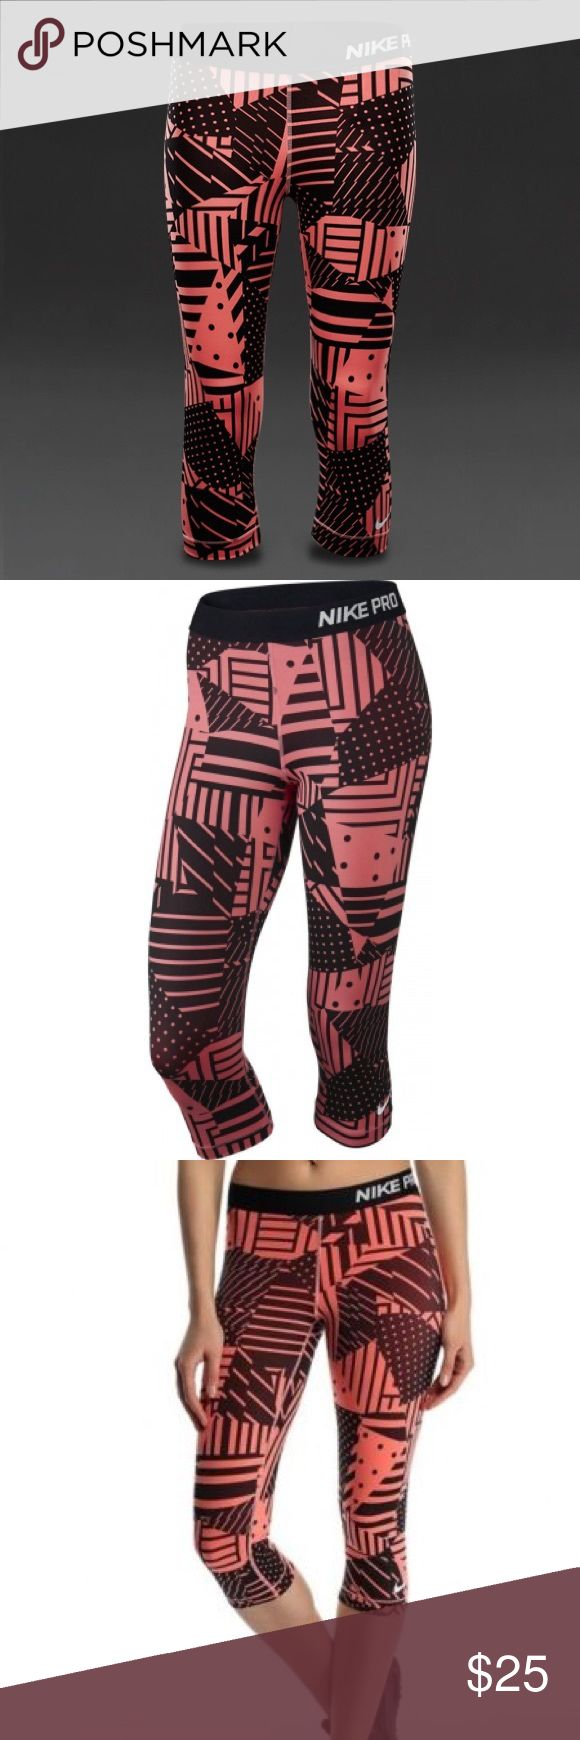 Nike Pro Capris/ leggings Nike Pro Patchwork Printed Women's Training Capris. Made with stretchy, Dri-FIT fabric with an Elastic Waistband. Perfect for intense workouts. Never worn Nike Pants Leggings